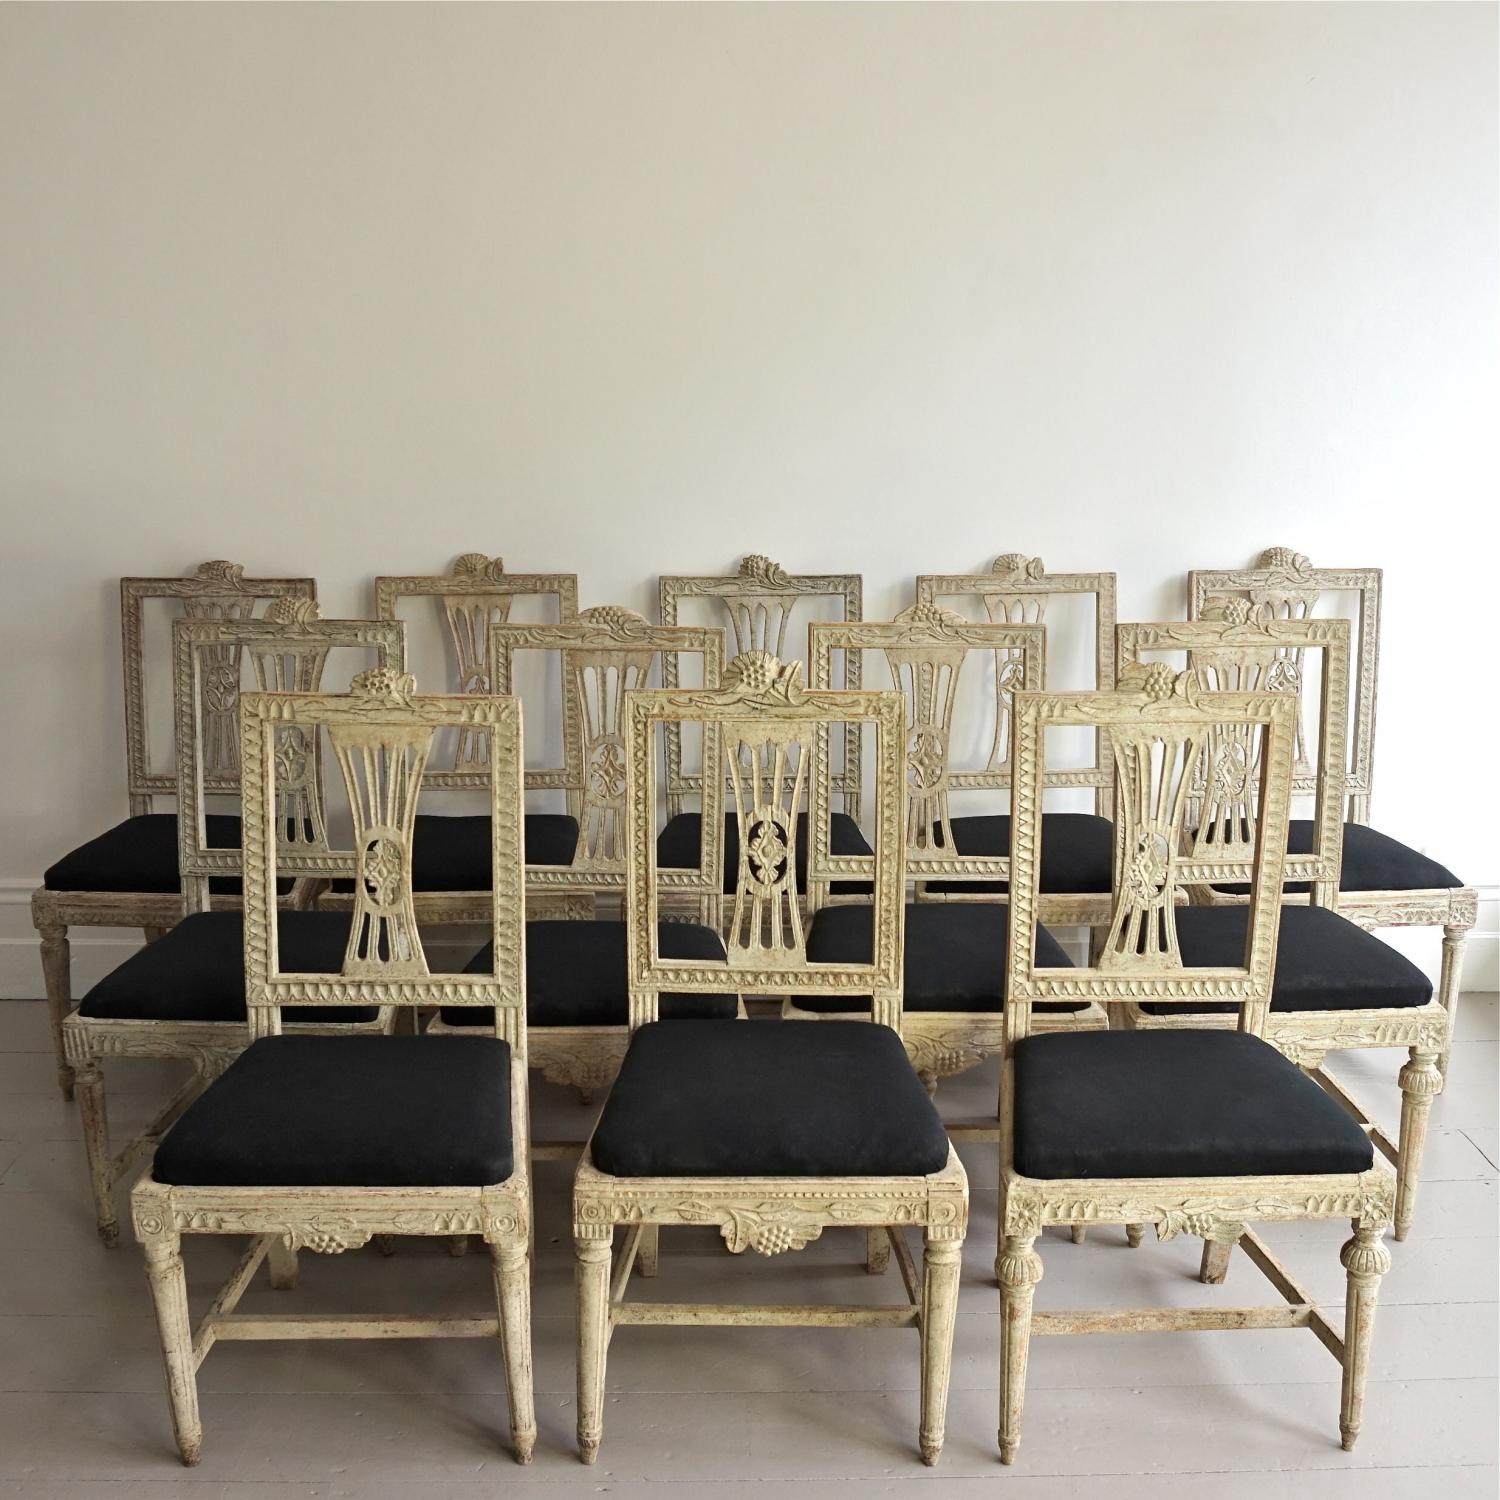 VERY RARE SET OF TWELVE GUSTAVIAN CHAIRS